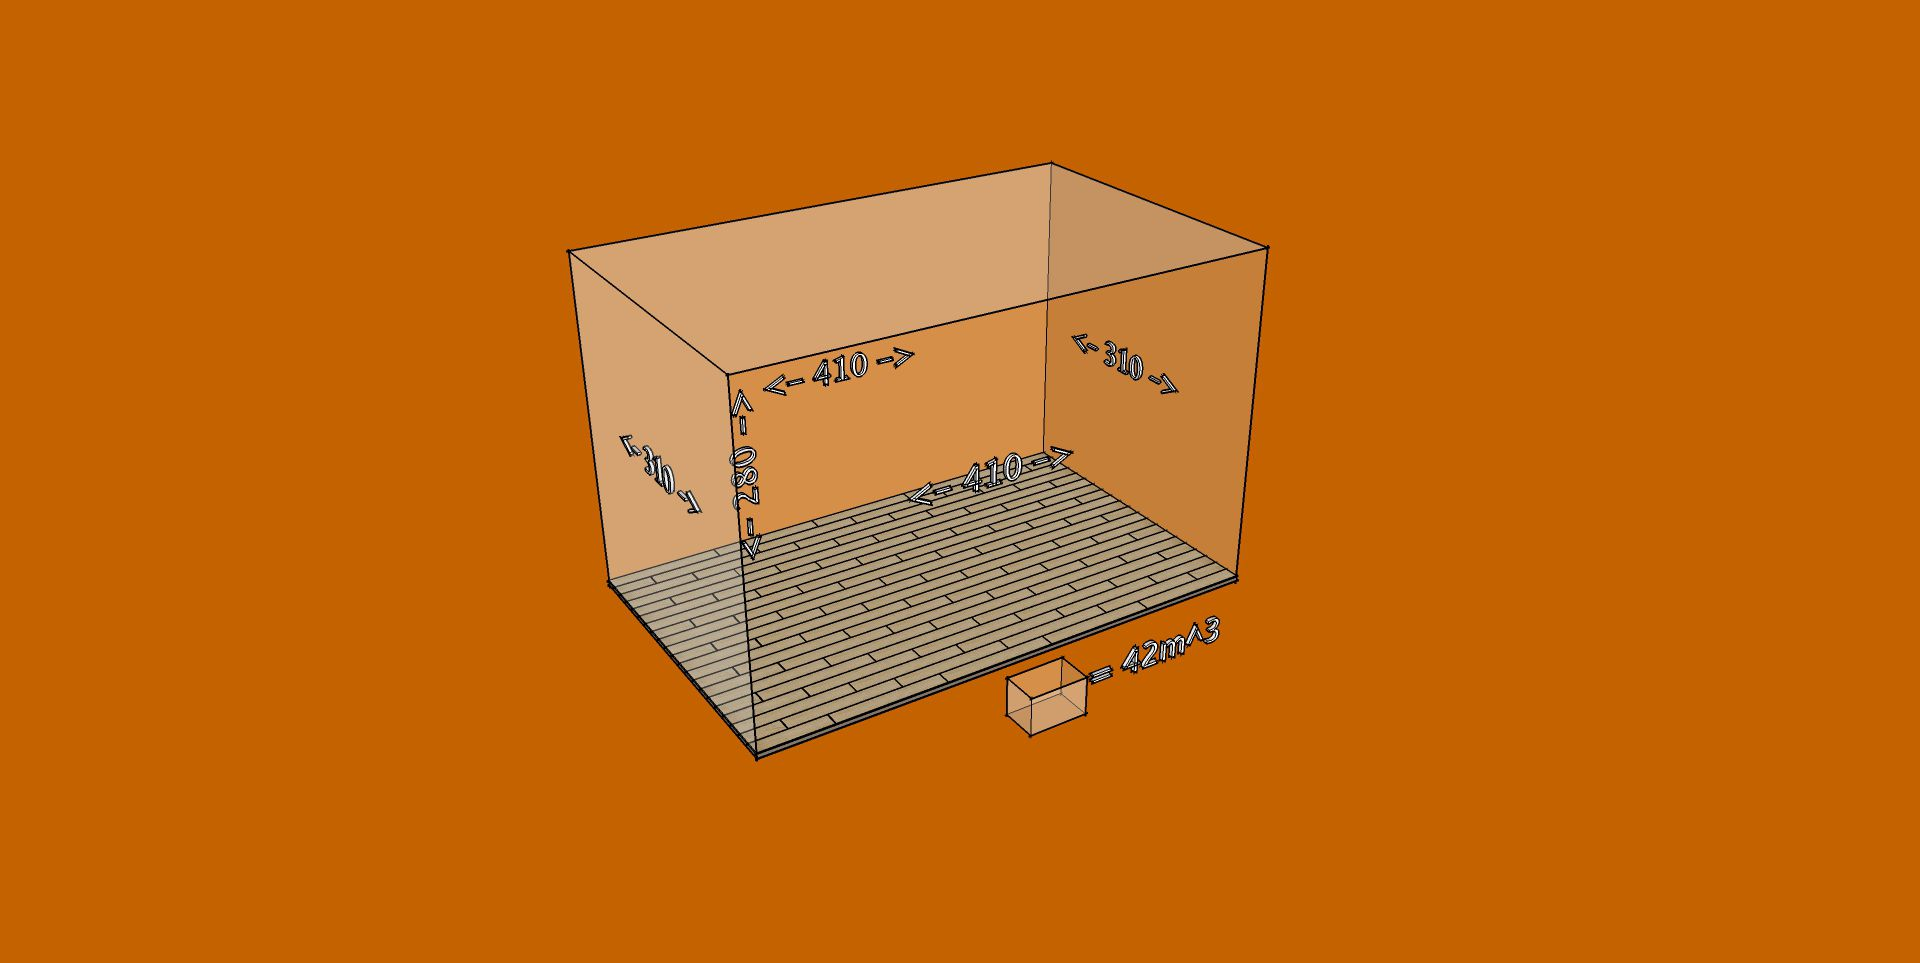 Part_1_Fig_3_Small_Room_Dimensions.jpg